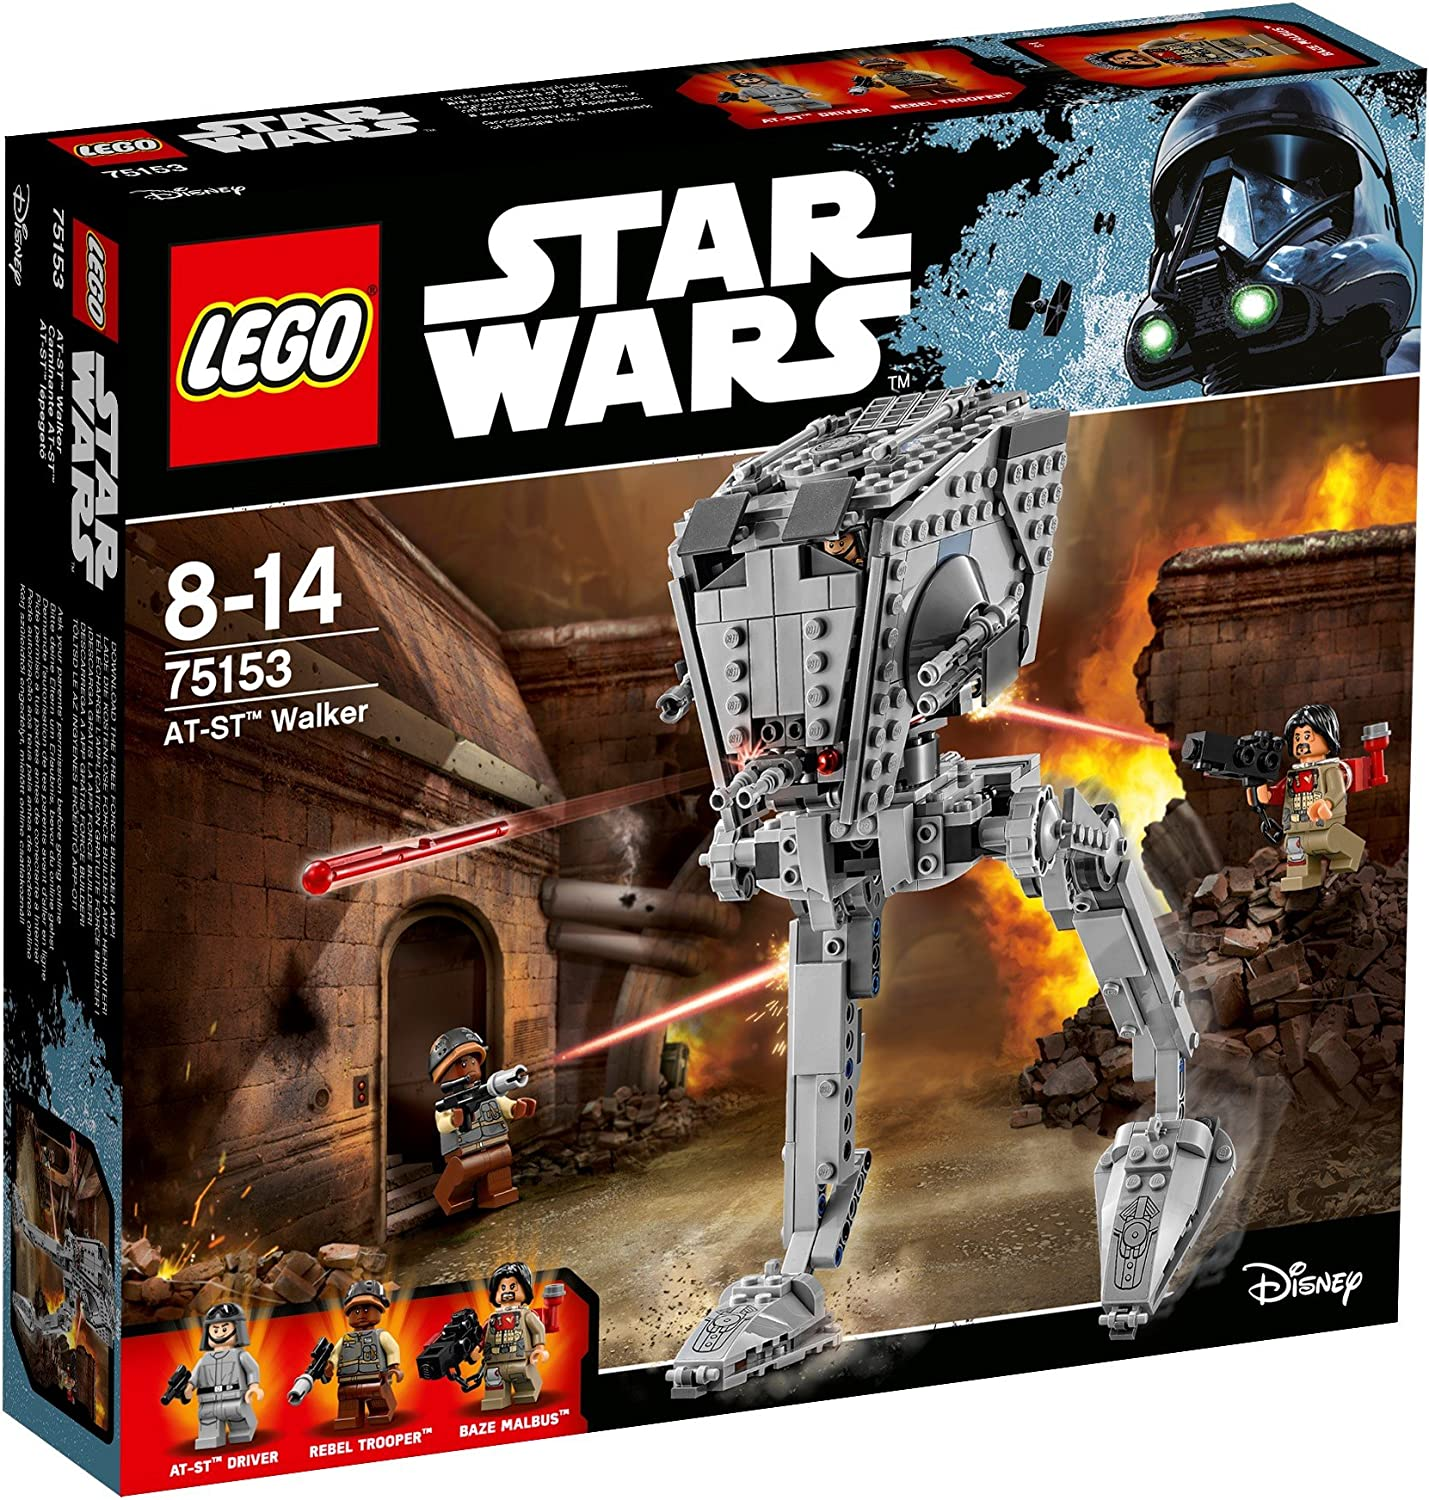 NEW FAST 75153-2016 AT-ST BAZE MALBUS FIGURE LEGO STAR WARS GIFT